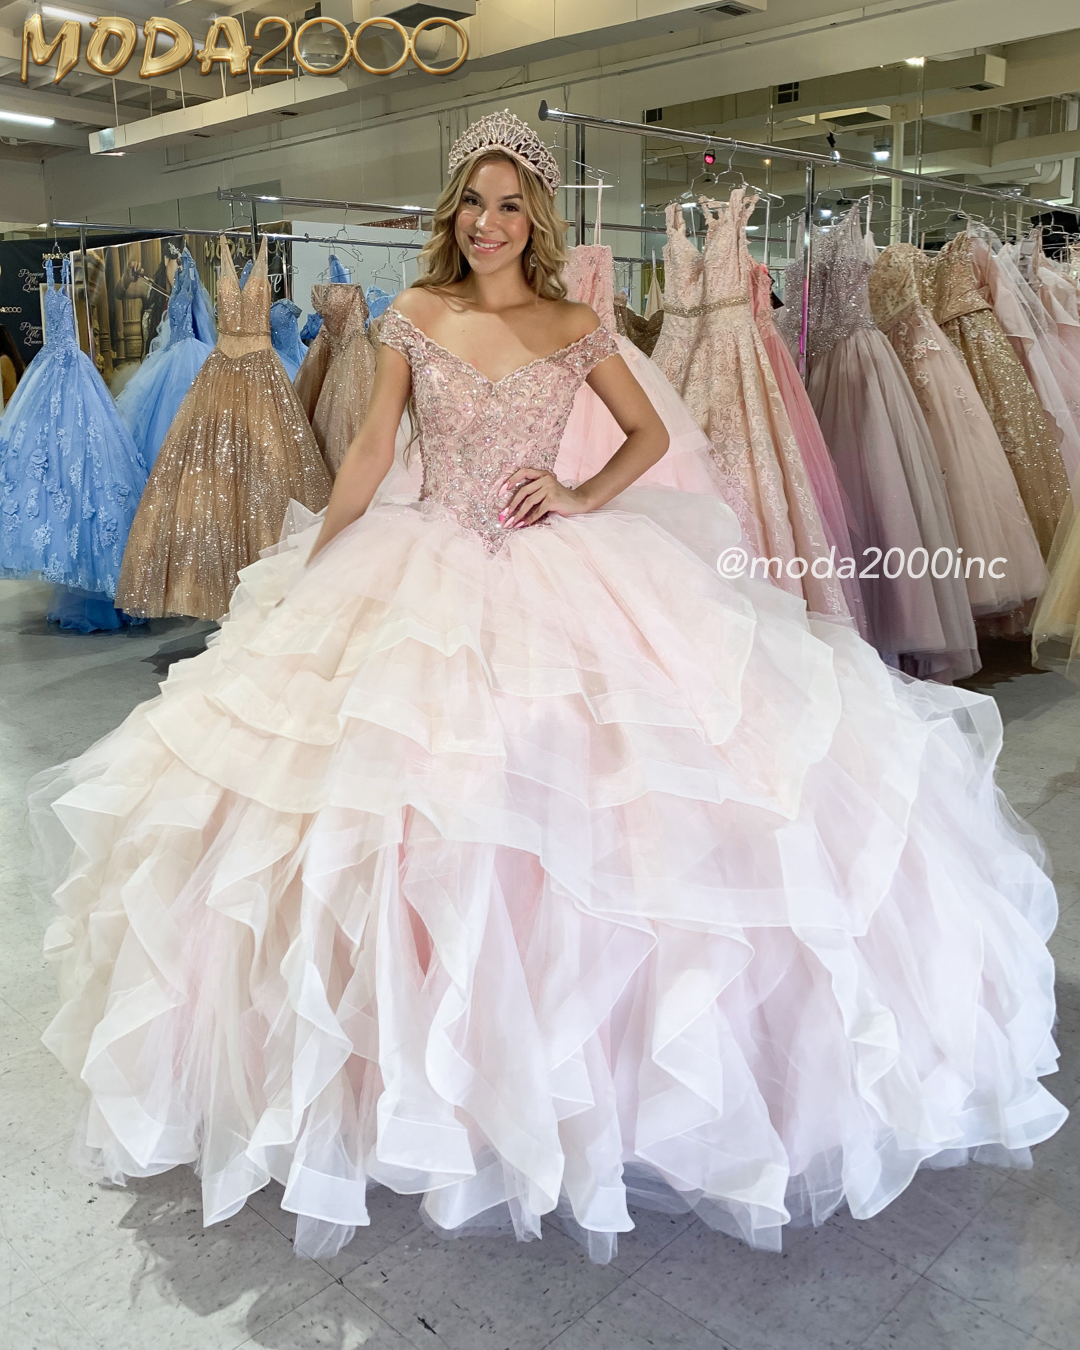 Pretty Of To Shoulder Ruffled Blush Pink Quinceanera Dress Quinceanera Dresses Pink Quince Dresses Quinceanera Dresses [ 1350 x 1080 Pixel ]